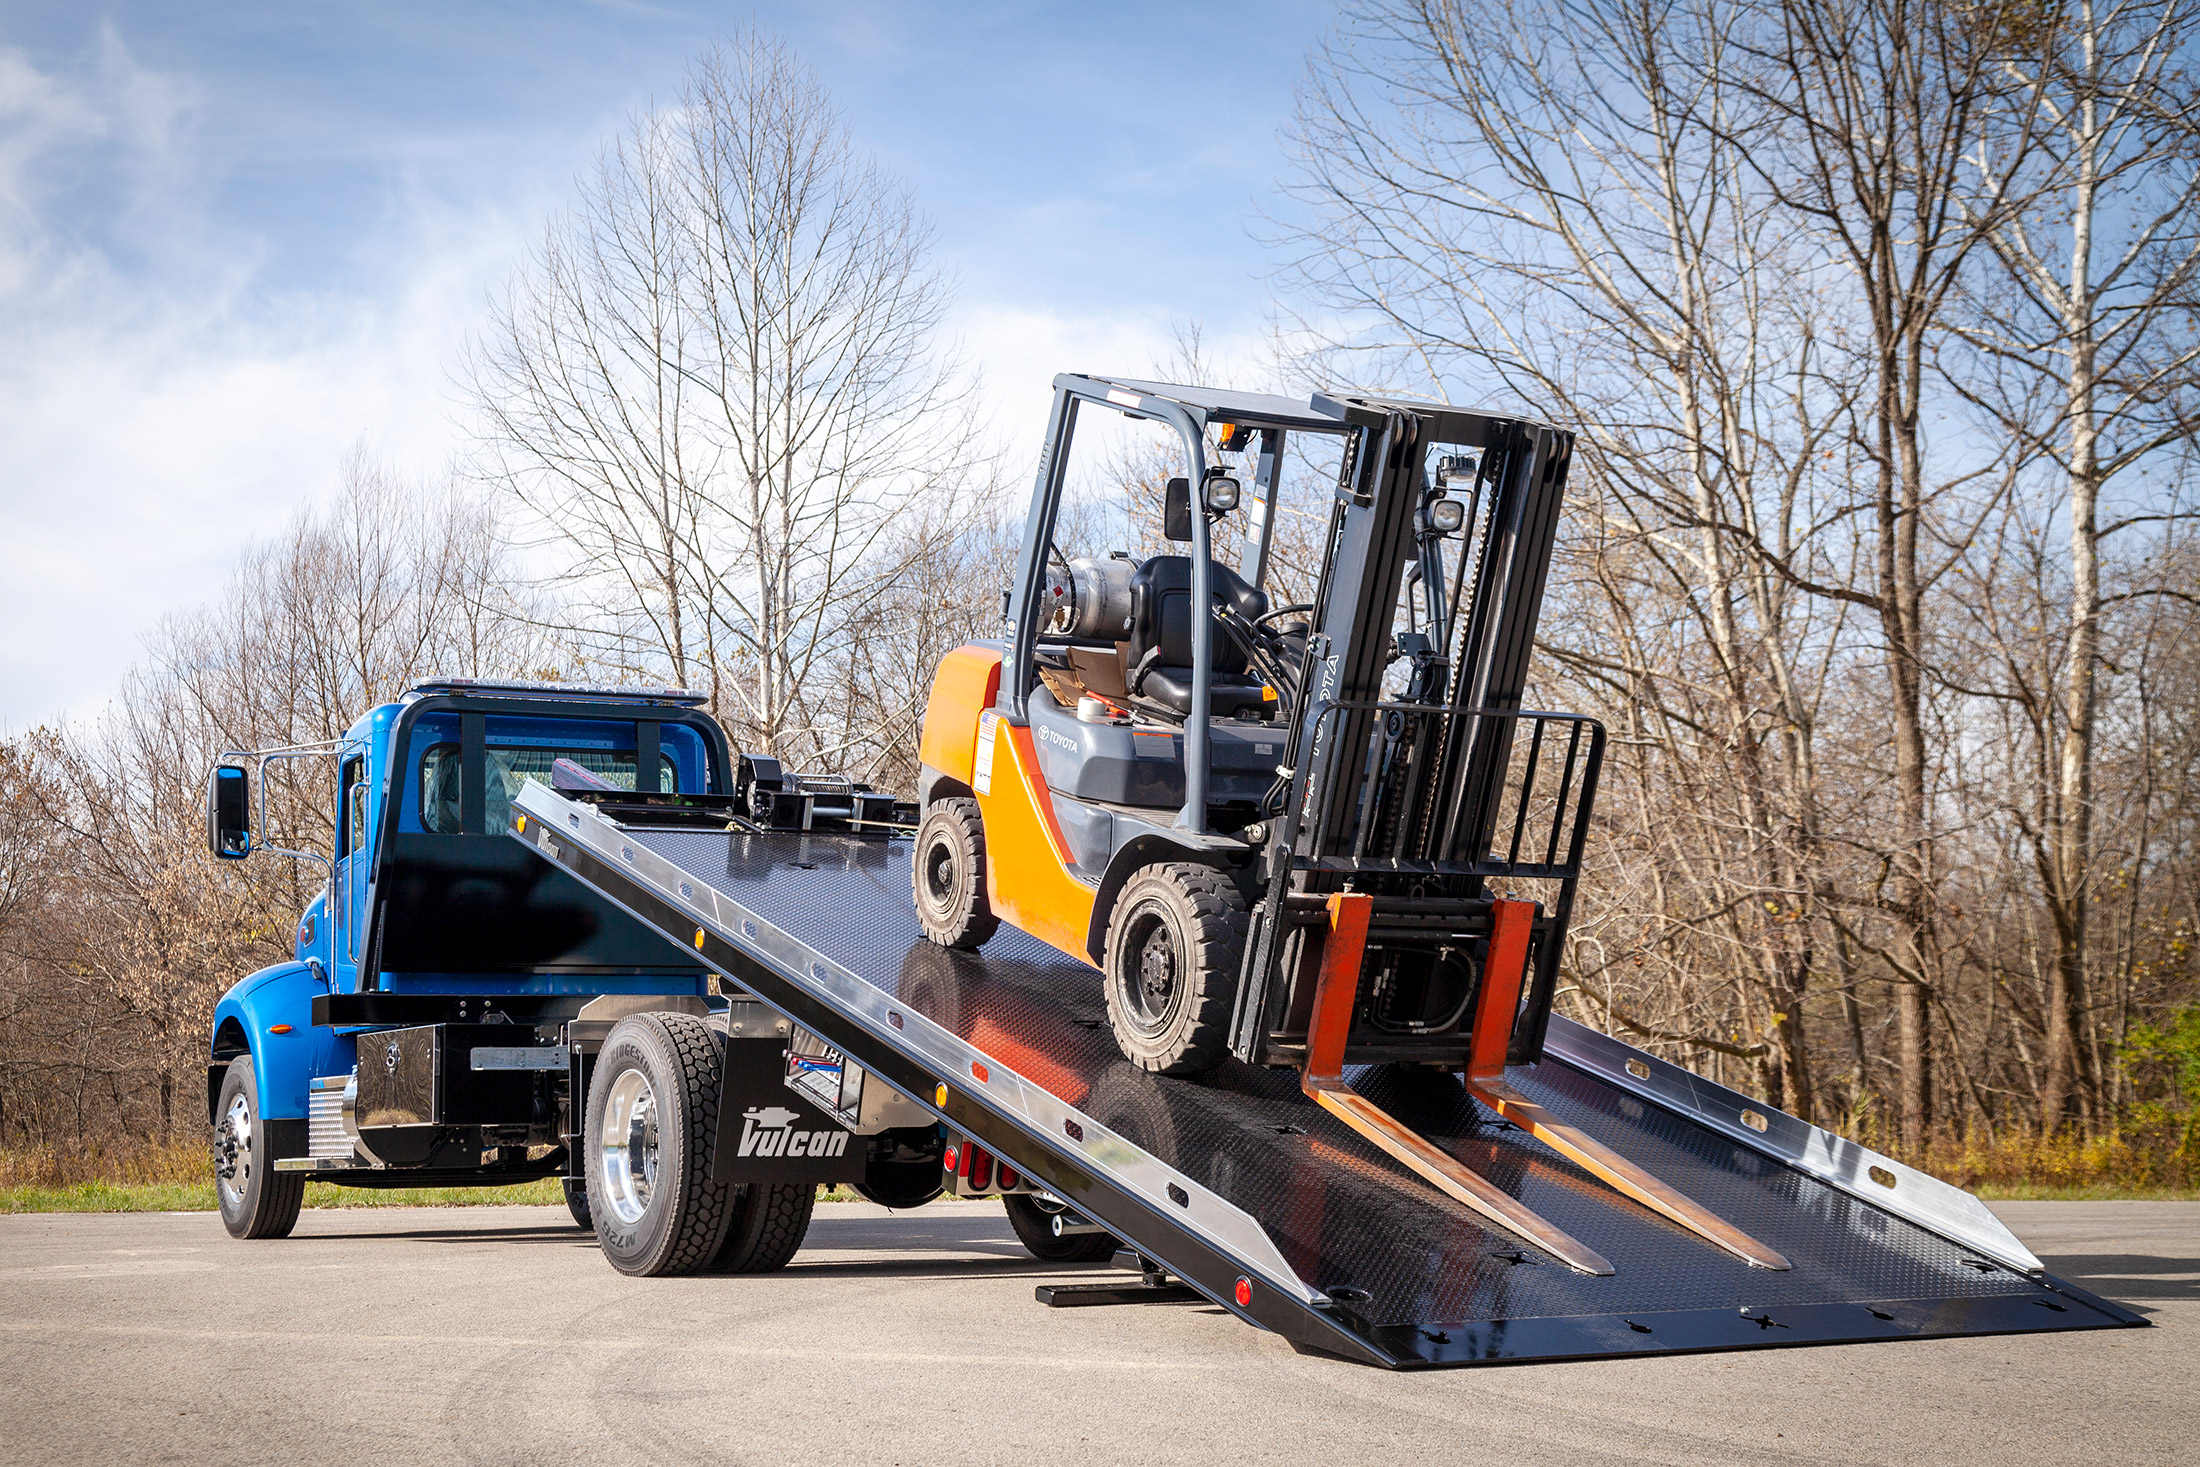 blue Vulcan 16 series lag on a Peterbilt 337 chassis loaded with forklift